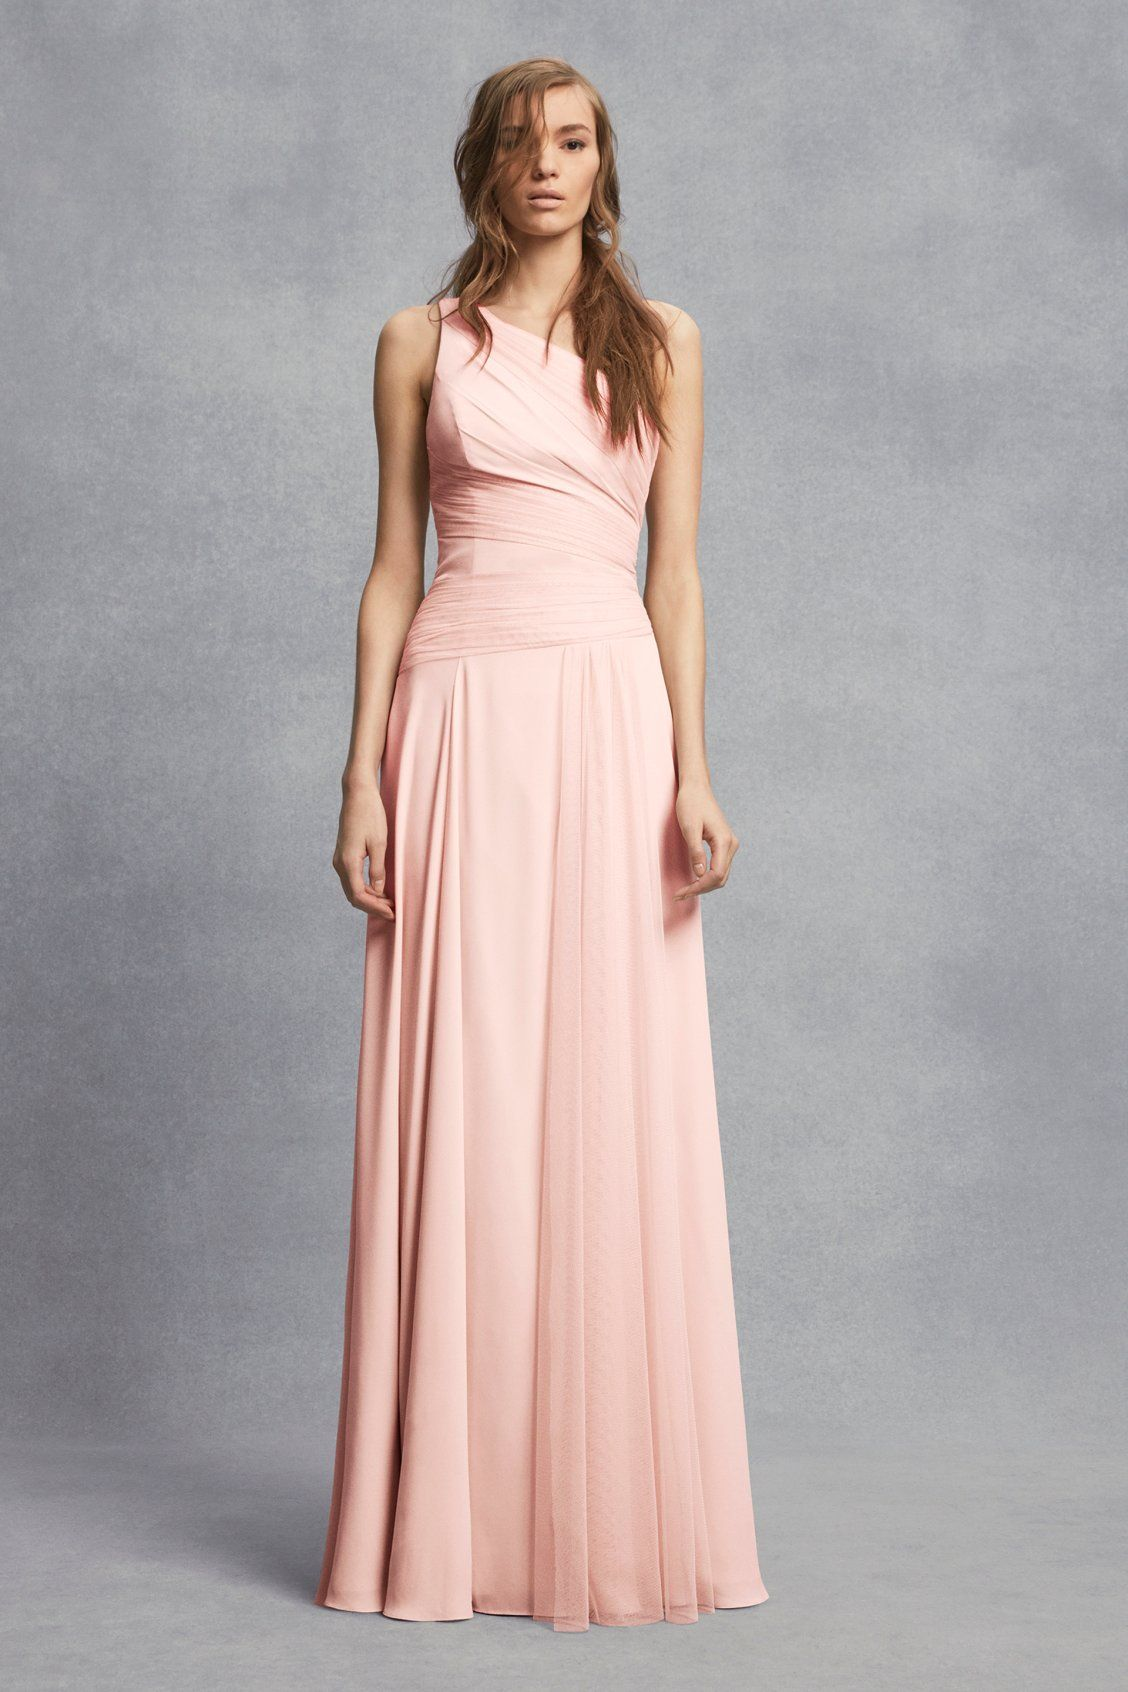 Vera wang pink wedding dress  This soft pink dress adds a romantic touch to your wedding Sheer